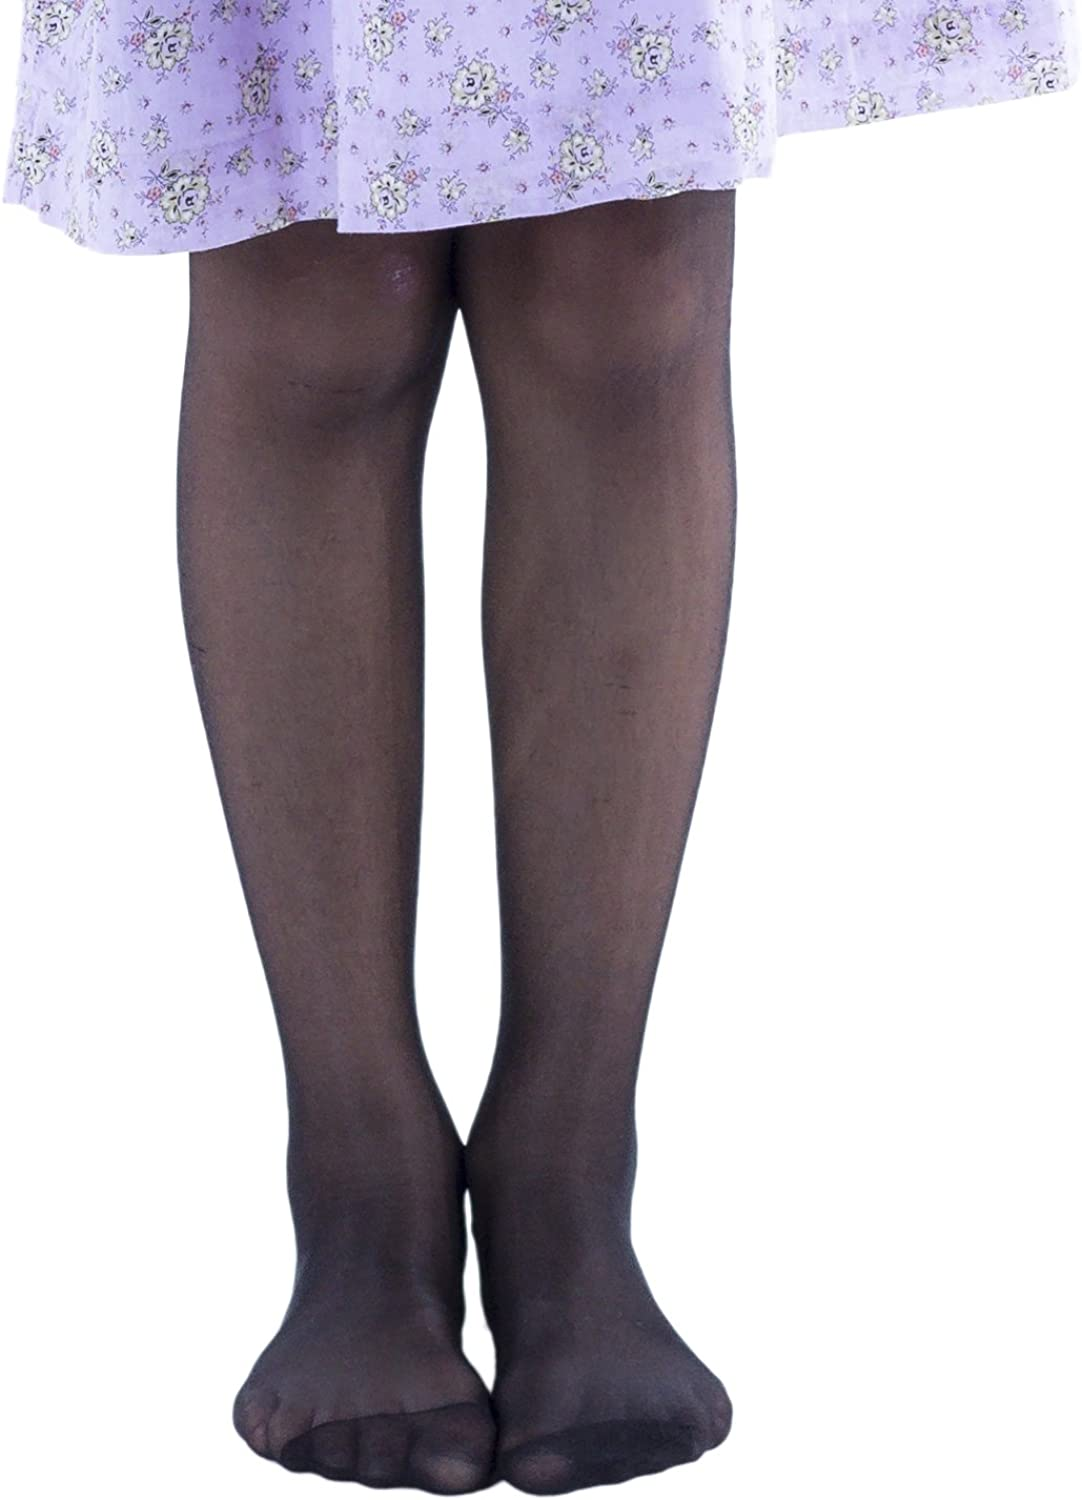 nude in little girl pantyhose News – Page 2 – Italian Tights